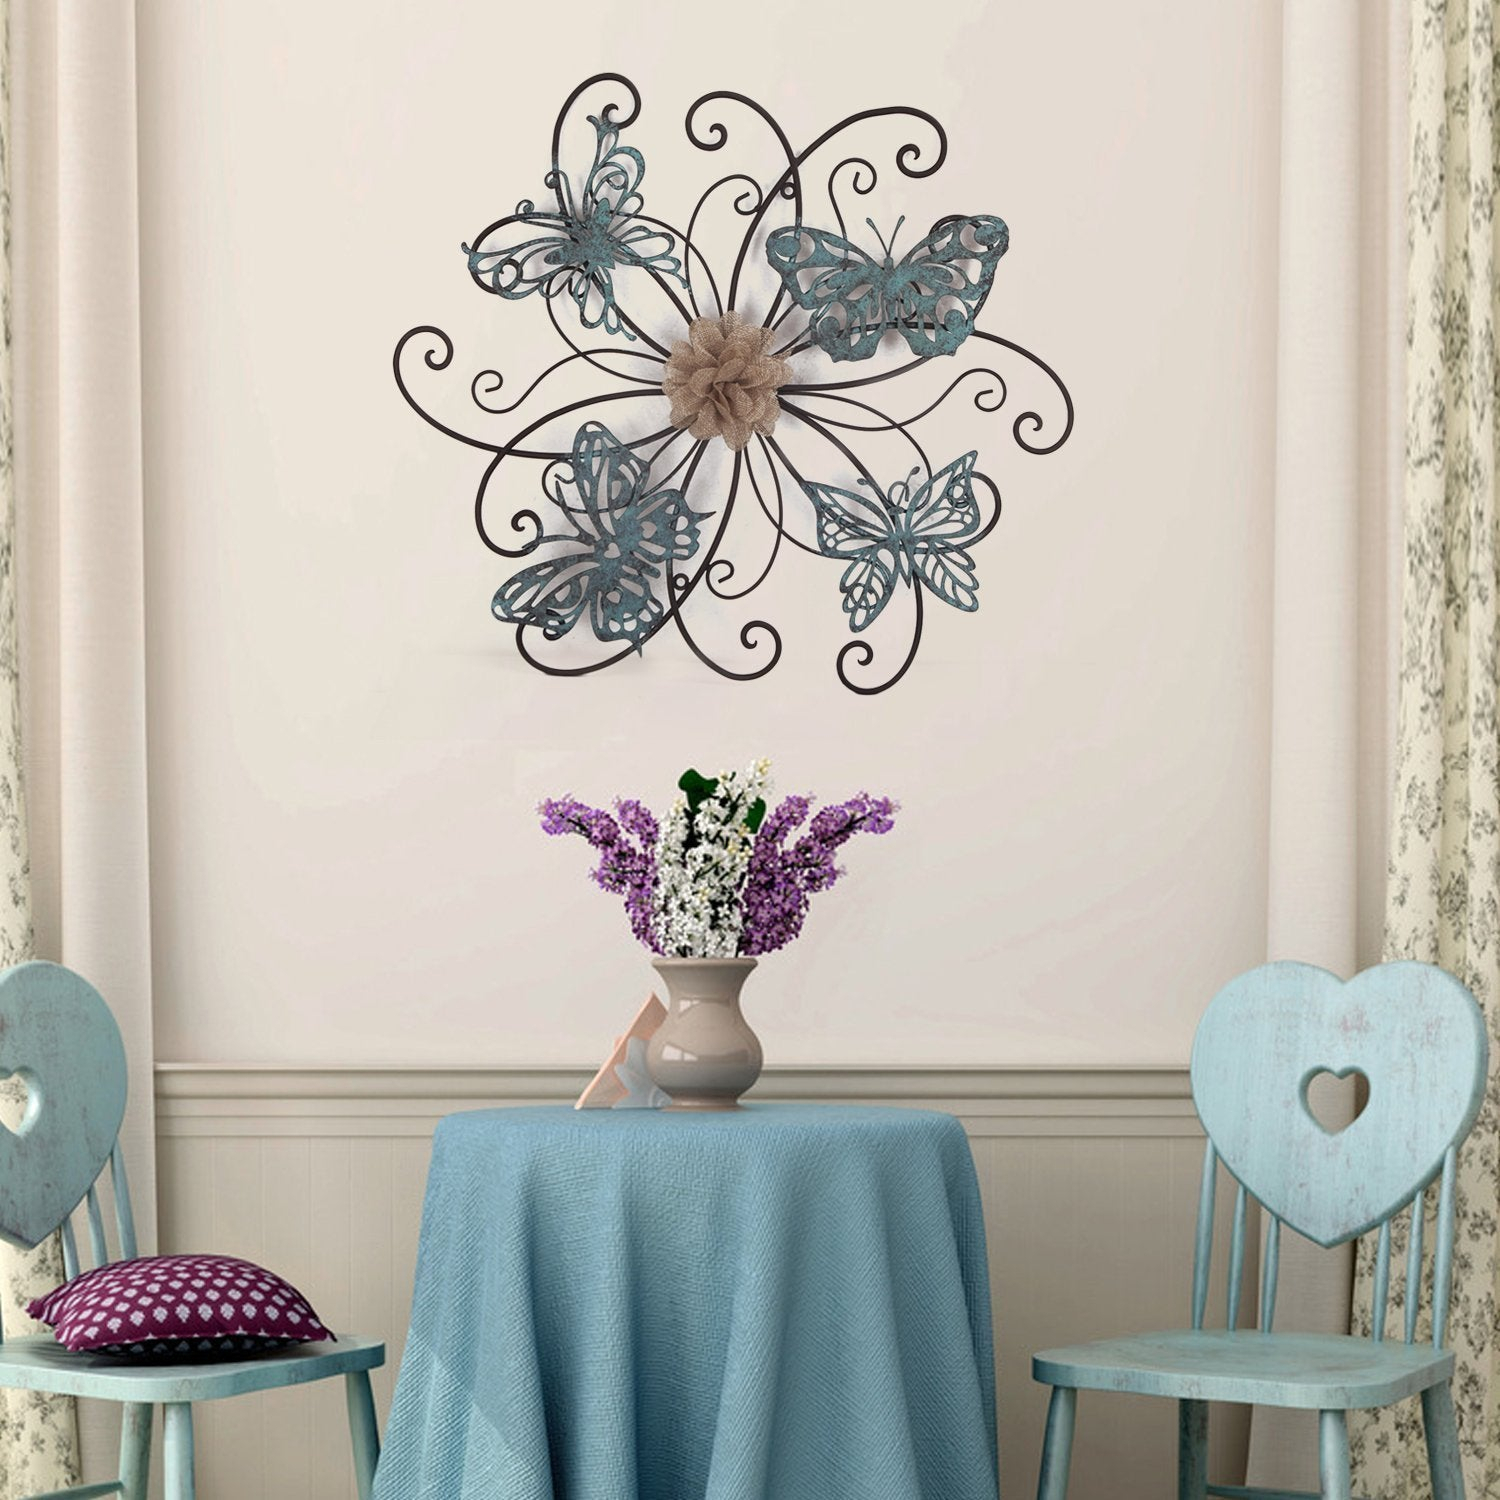 Details About Adeco Flower And Butterfly Urban Design Metal Wall Decor For Nature Home Art For Flower And Butterfly Urban Design Metal Wall Decor (View 7 of 30)